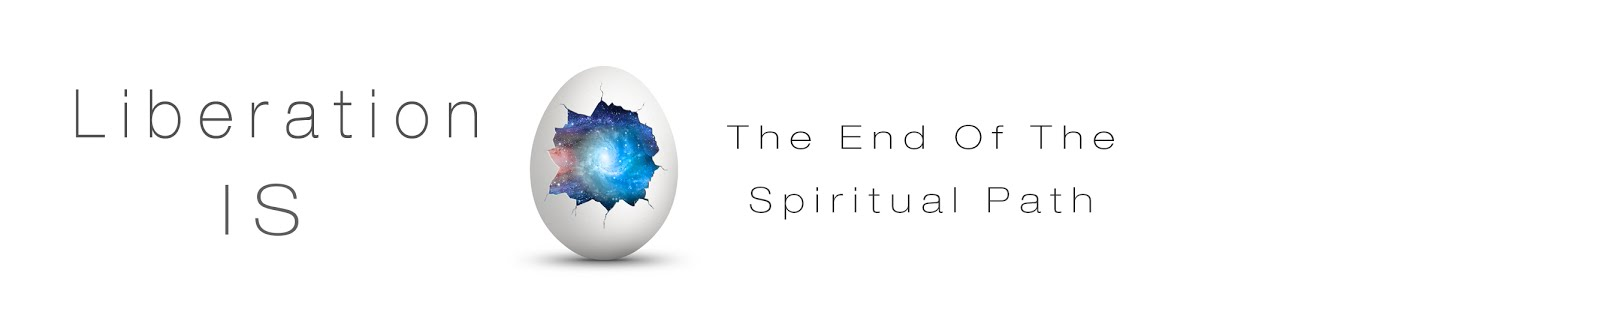 Liberation IS - The End of the Spiritual Path